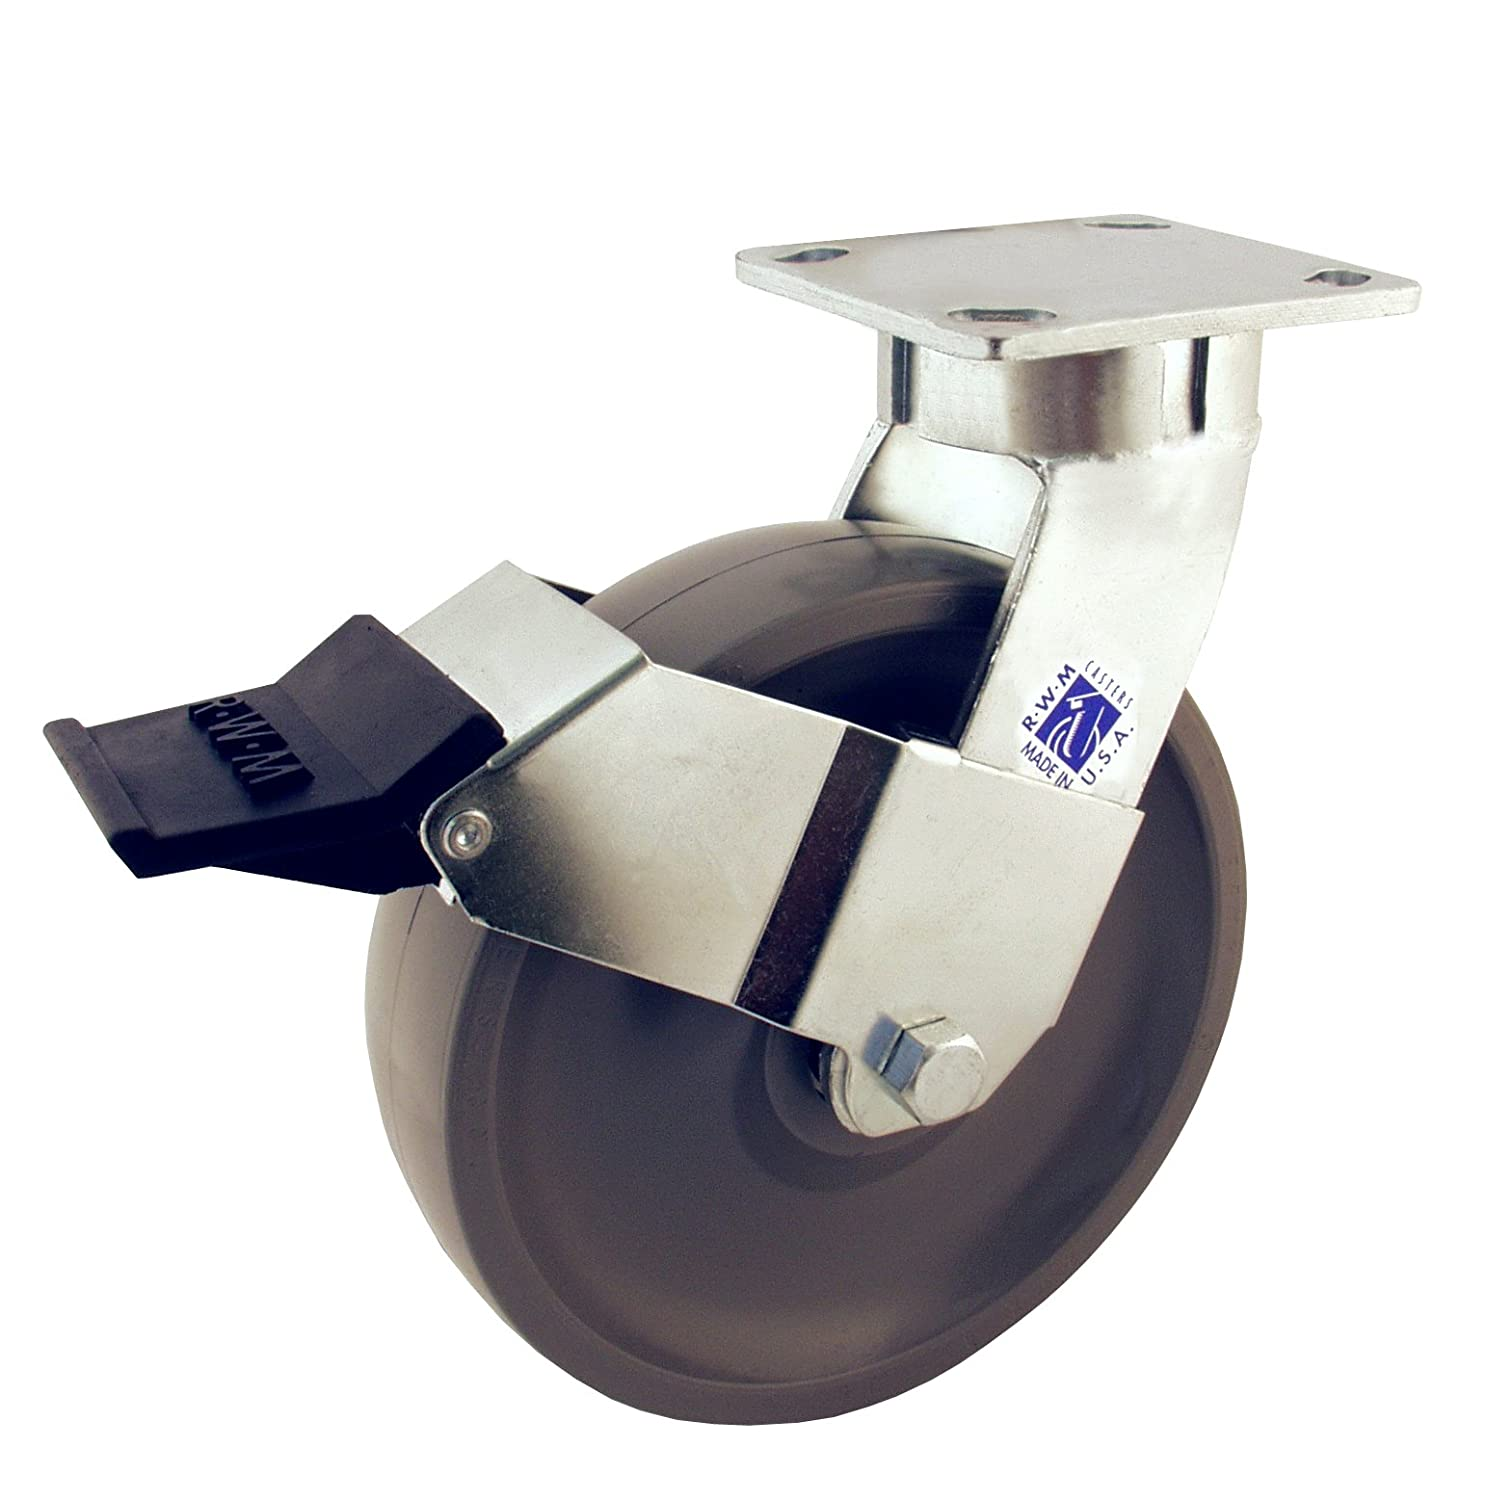 Hot Sale 2017 Rwm Casters 65 Series Plate Caster Swivel